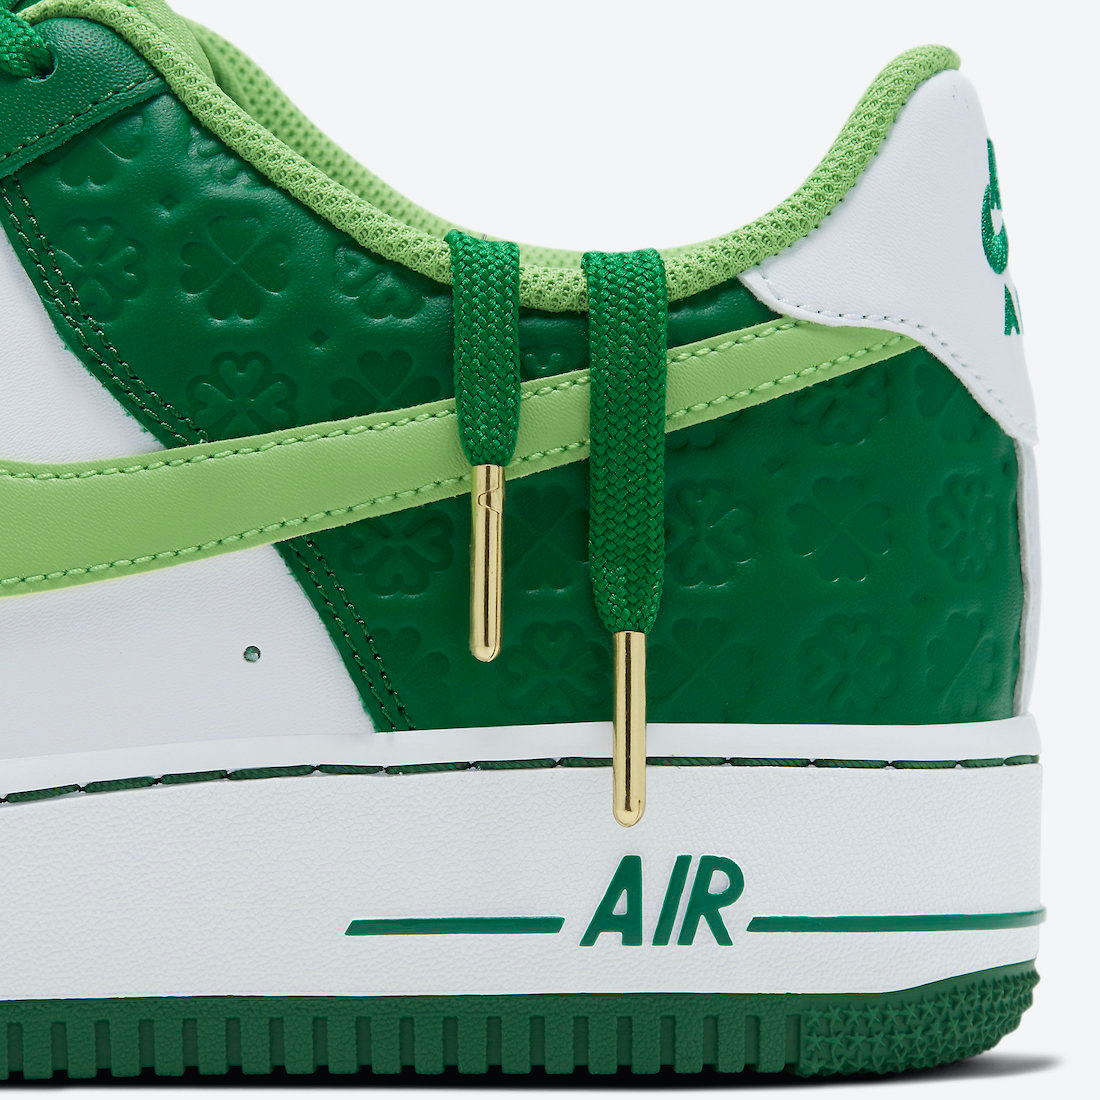 nike-air-force-1-st-patricks-day-2021-release-date-price-resell-where-to-buy-10